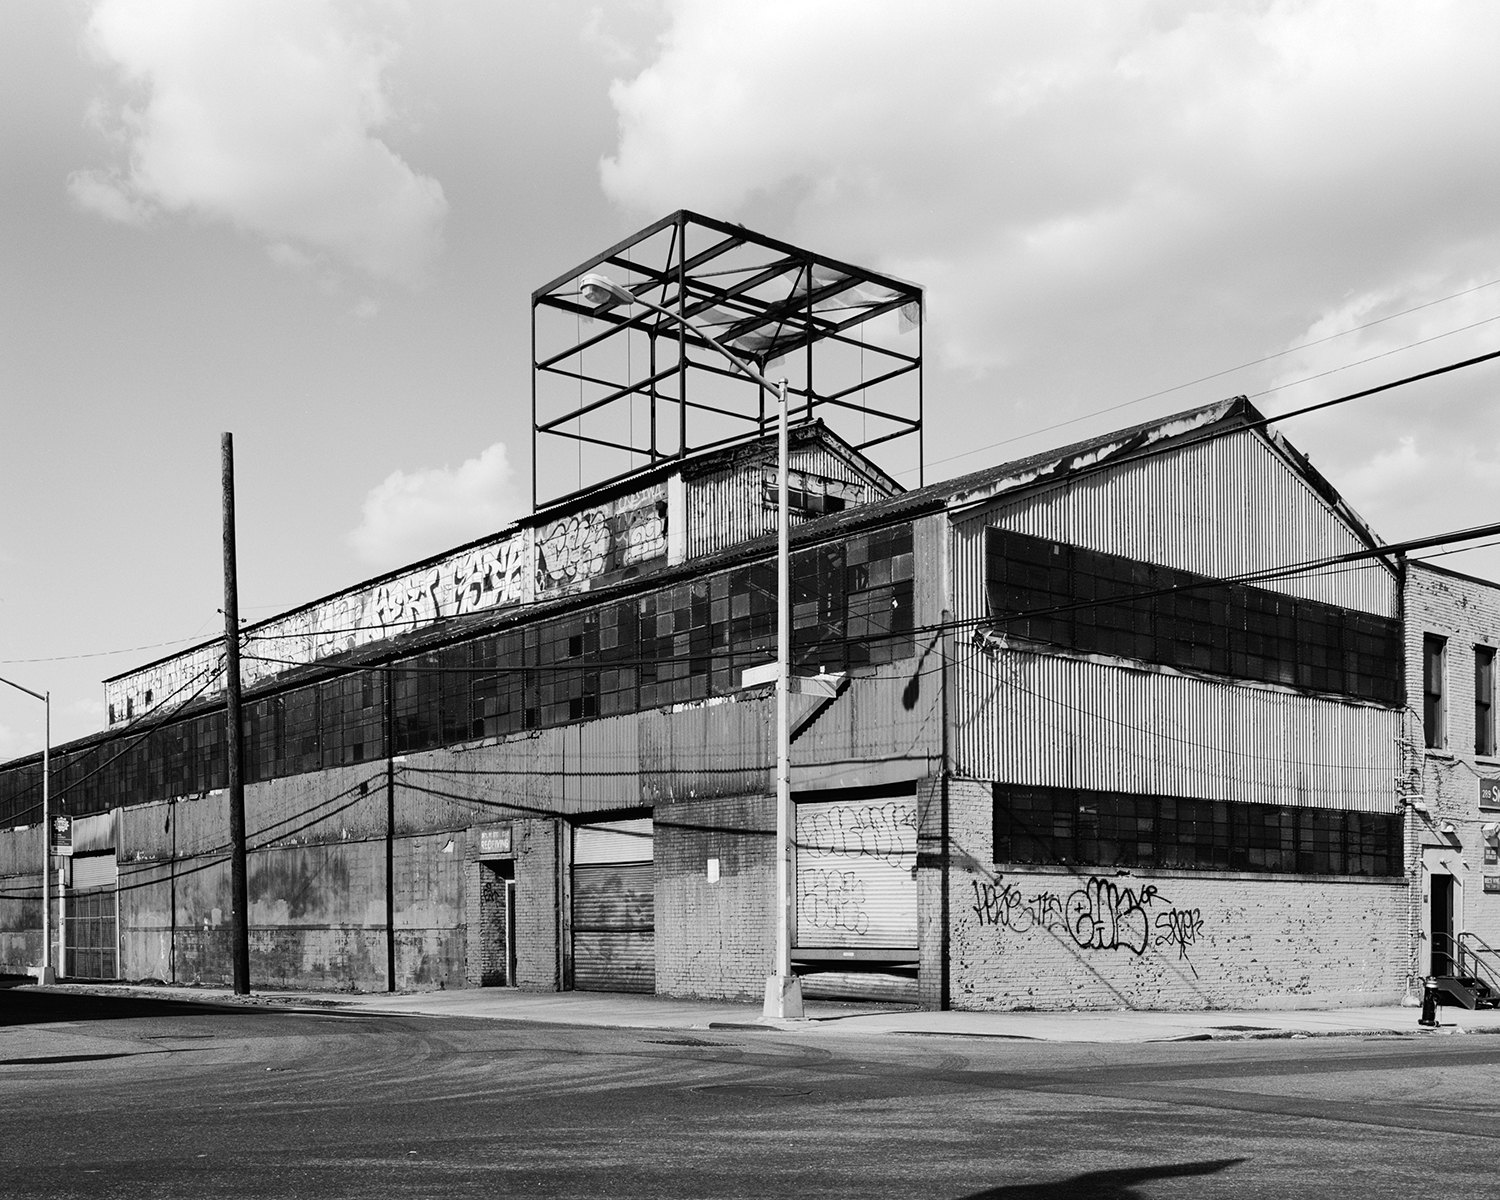 bushwick_warehouse_F002_WEB_1500.jpg